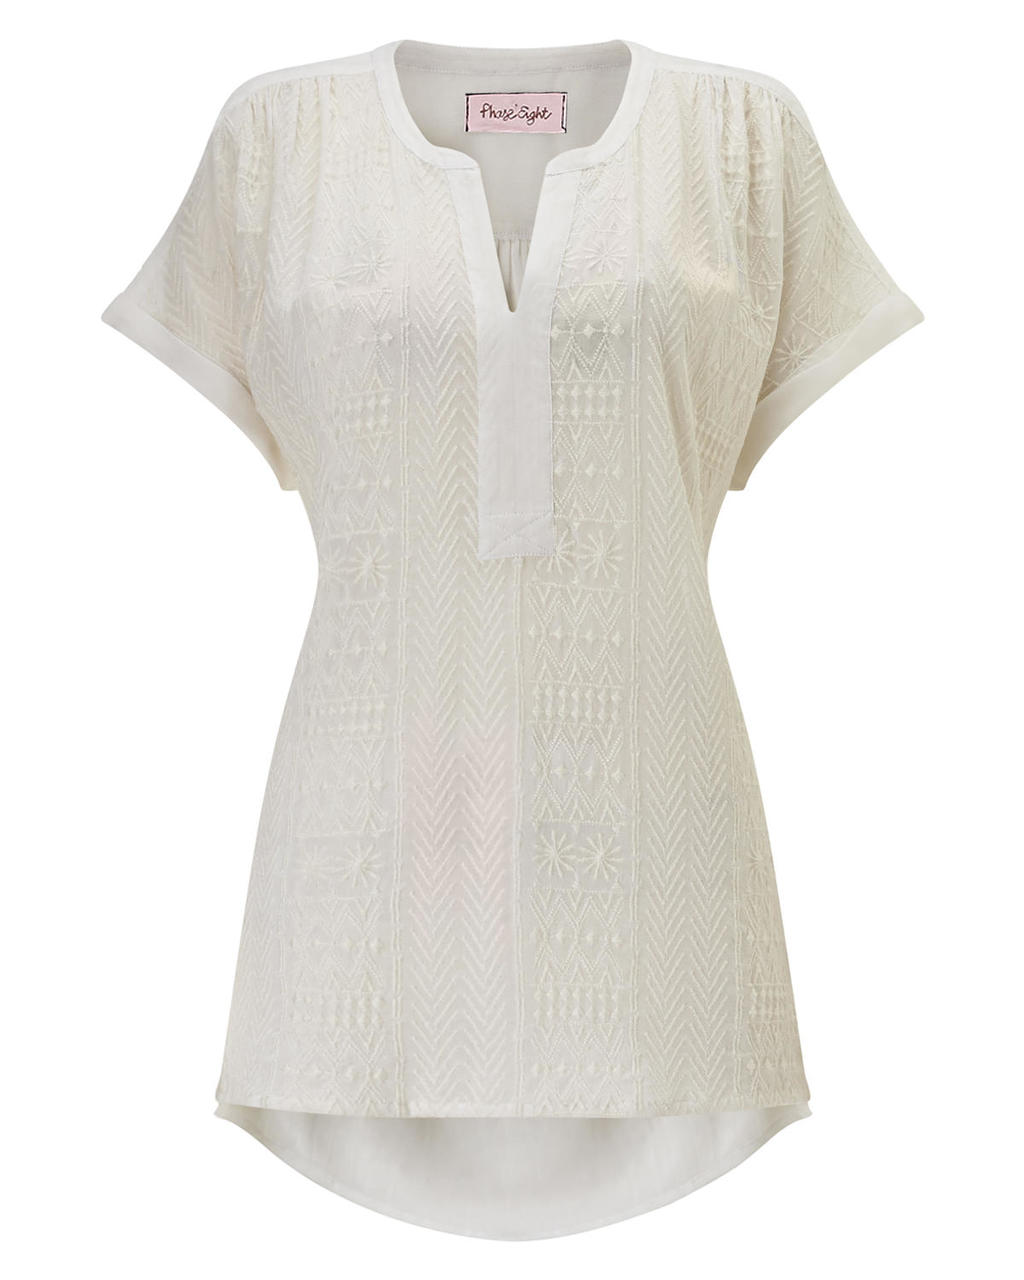 Eddie Embroidered Top - neckline: v-neck; pattern: plain; length: below the bottom; predominant colour: ivory/cream; occasions: casual; style: top; fibres: viscose/rayon - 100%; fit: body skimming; sleeve length: short sleeve; sleeve style: standard; pattern type: fabric; texture group: other - light to midweight; embellishment: embroidered; season: s/s 2016; wardrobe: highlight